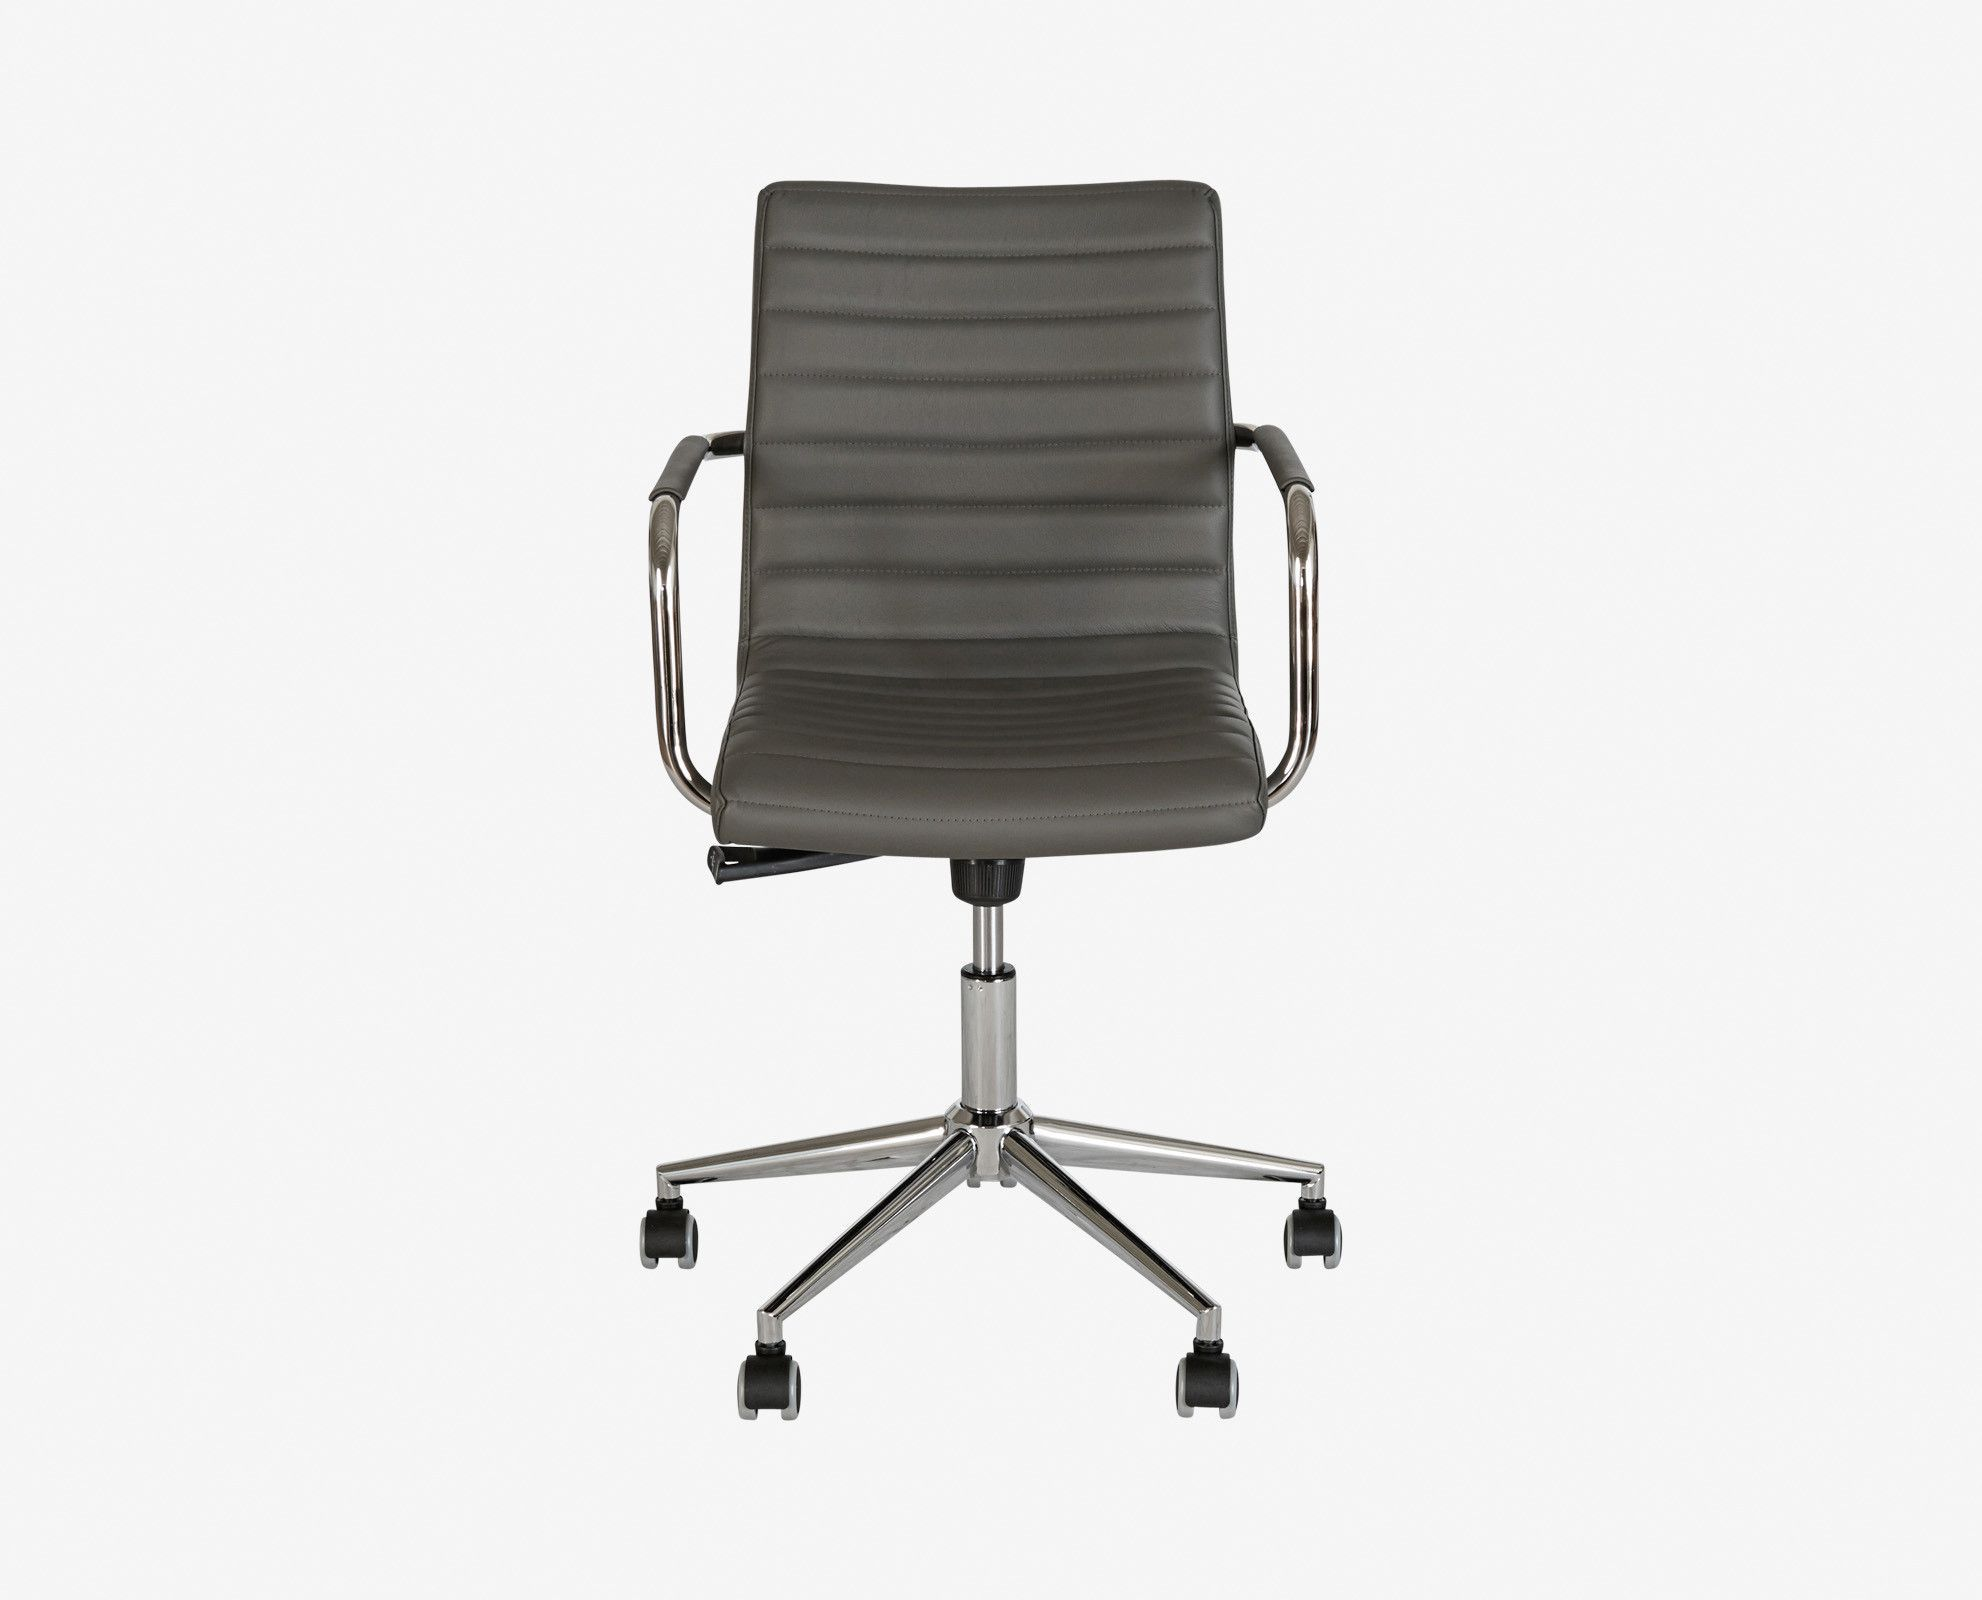 Kontor low back leather chair leather chair chair